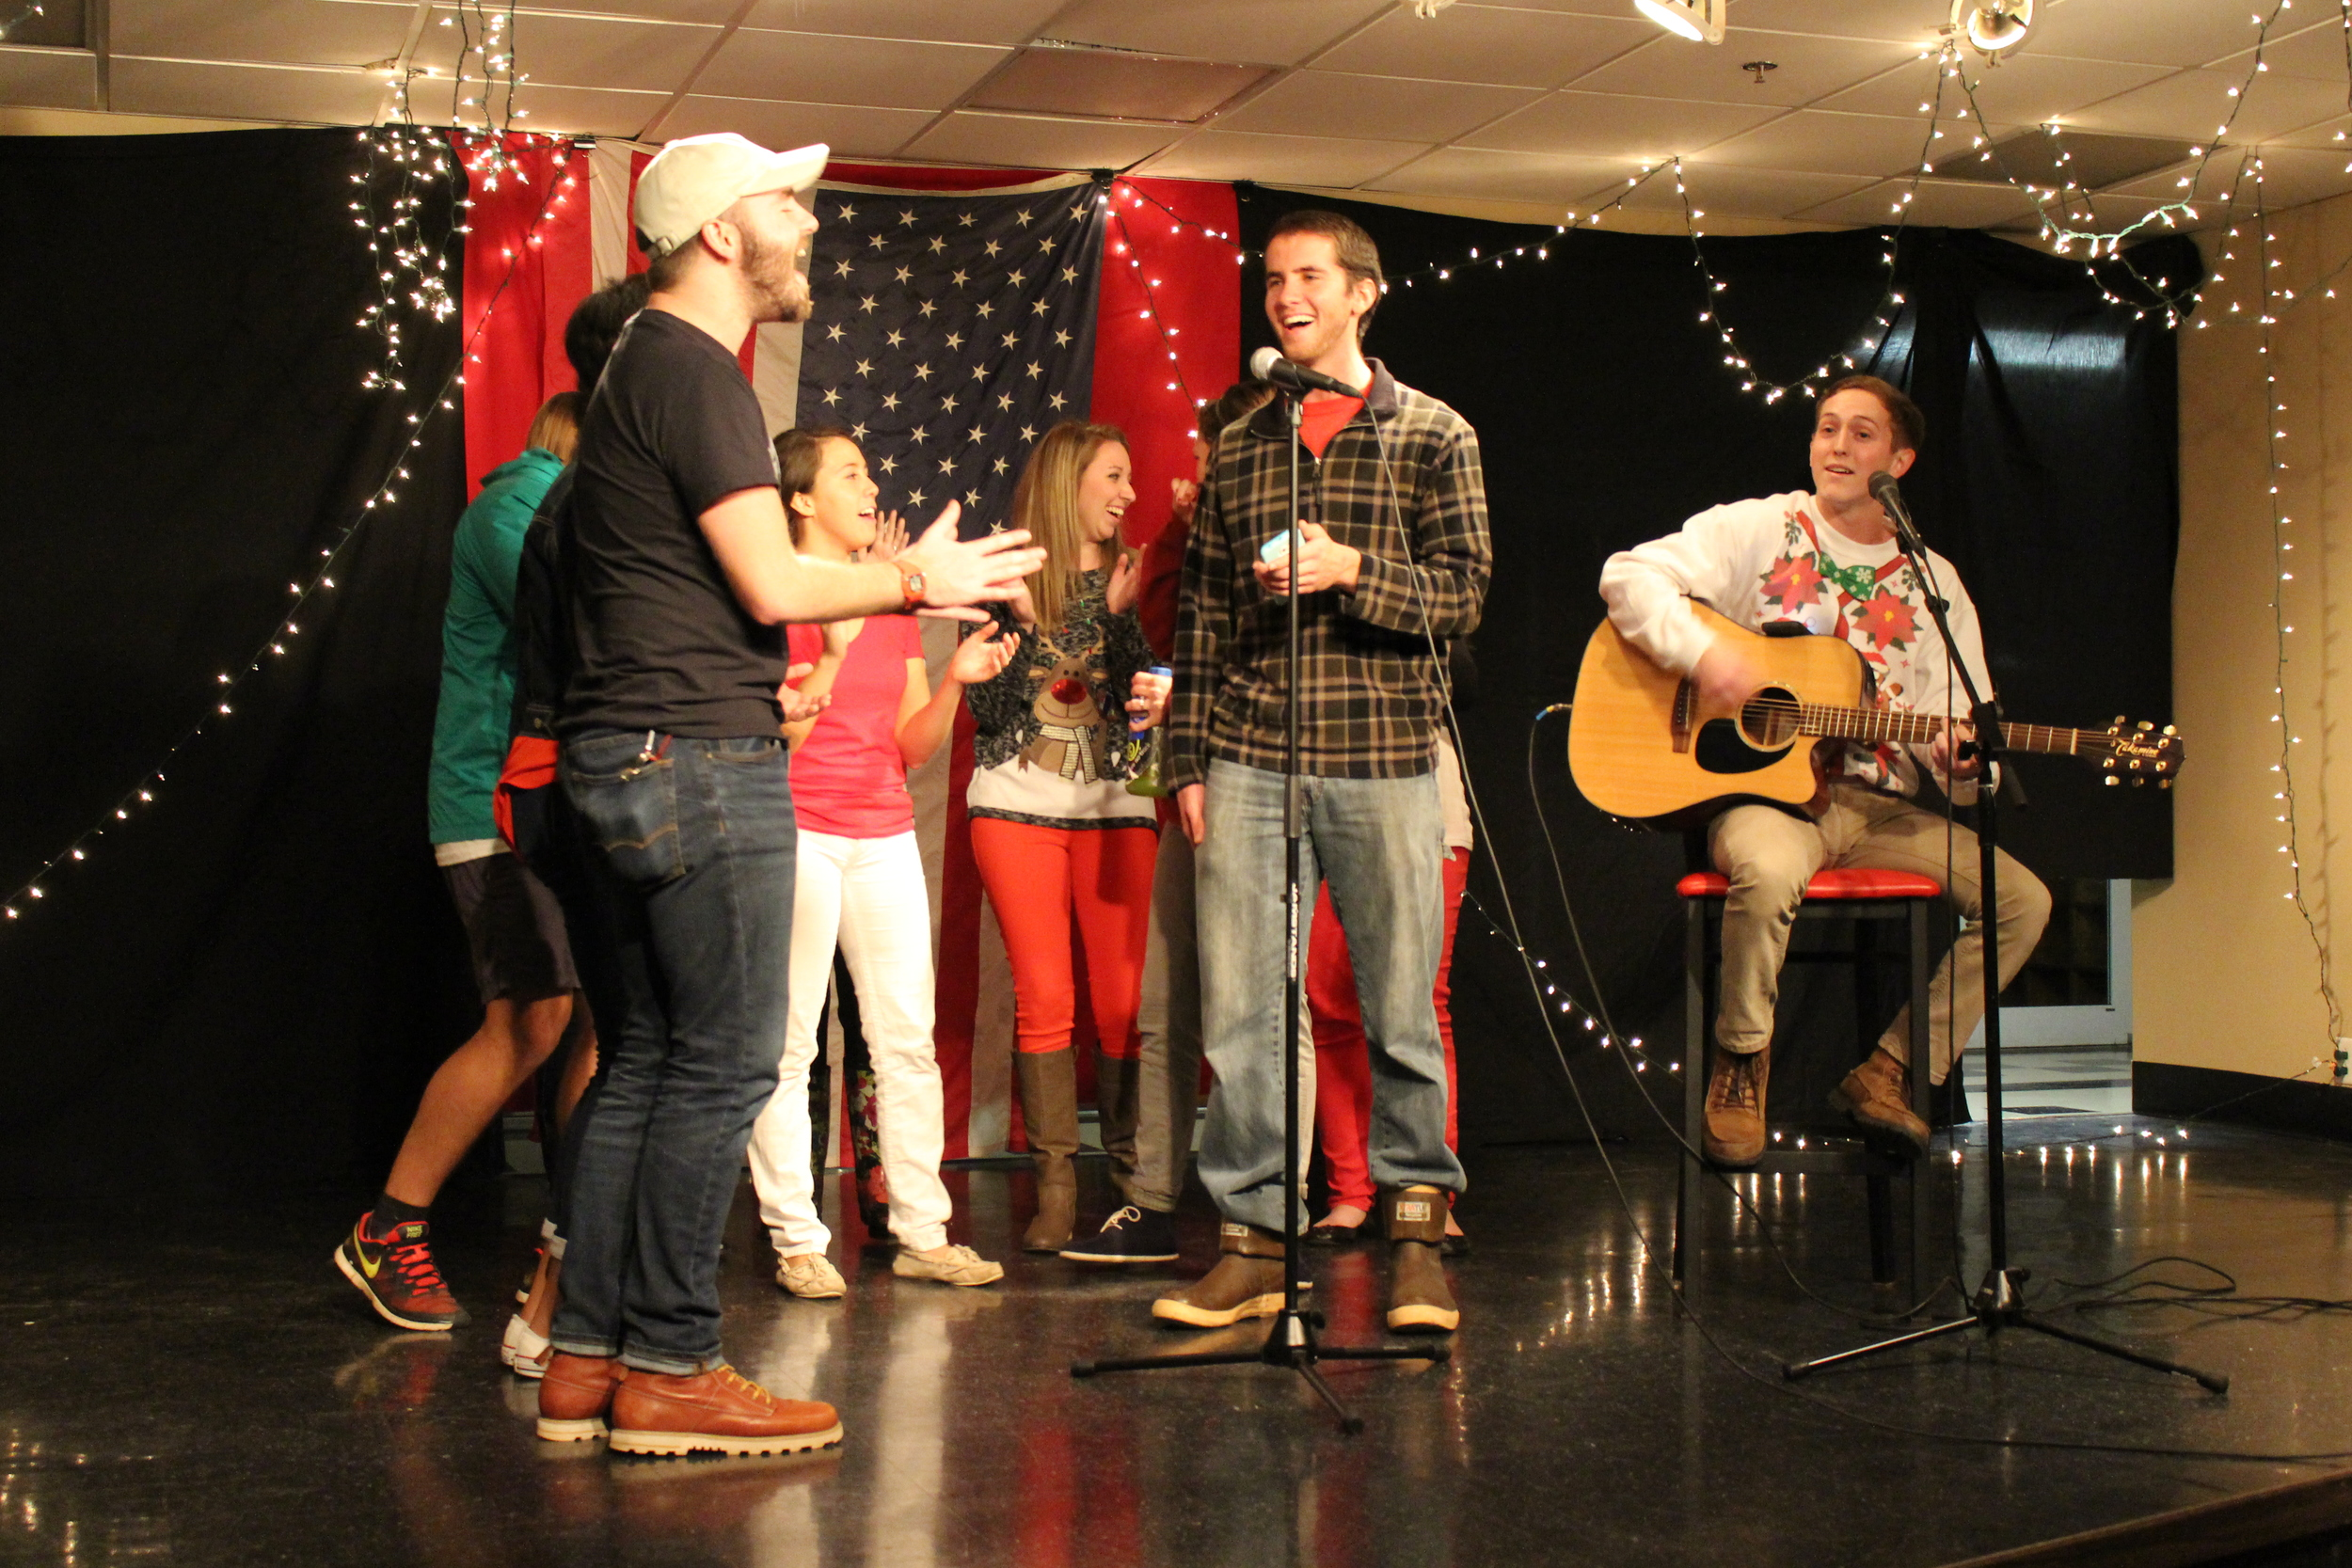 NGU Activities Staff perform their own rendition of a Christmas classic.